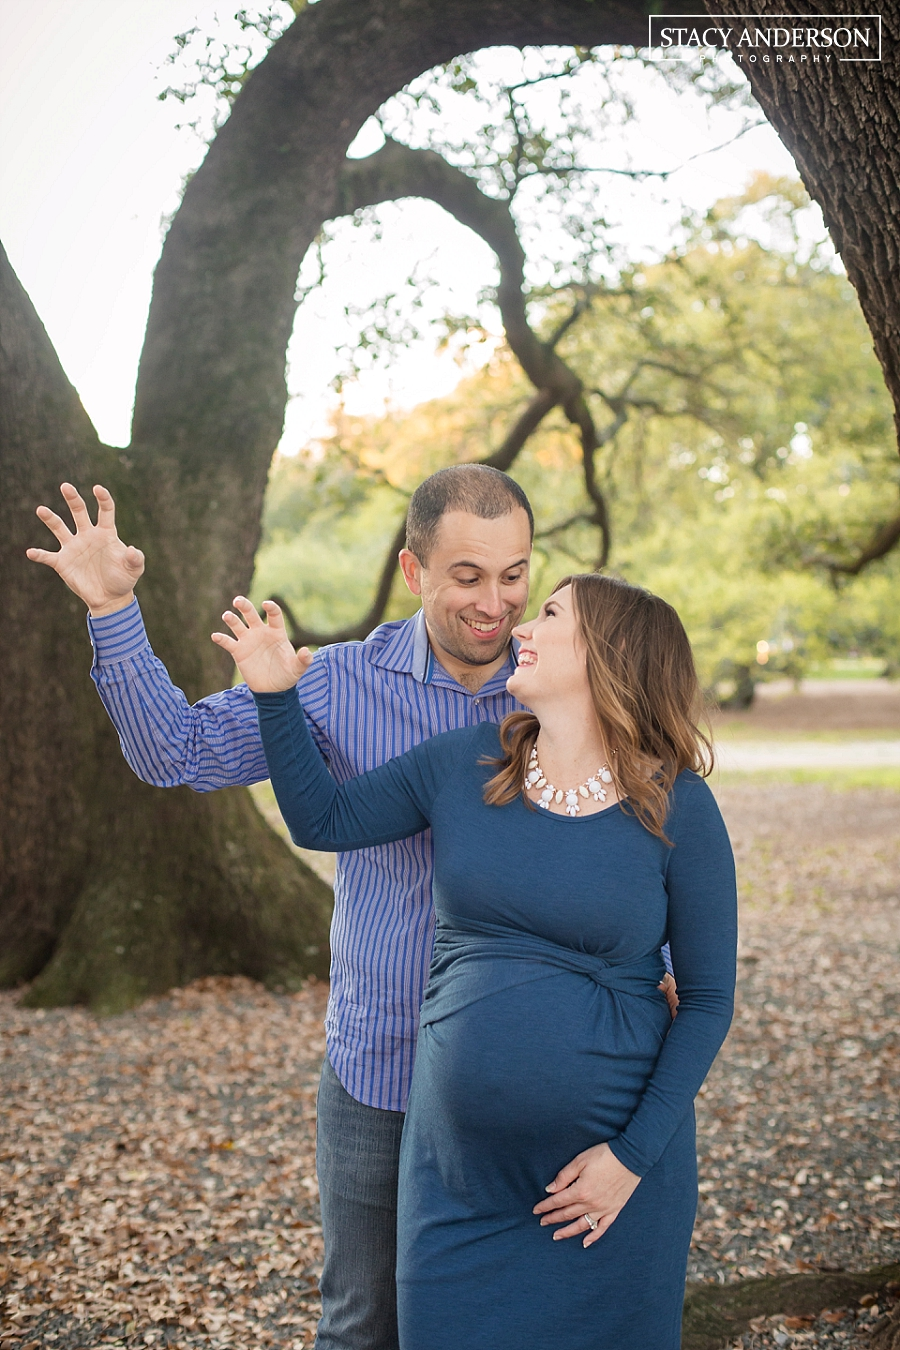 Stacy Anderson Photography Houston Maternity Photographer_1195